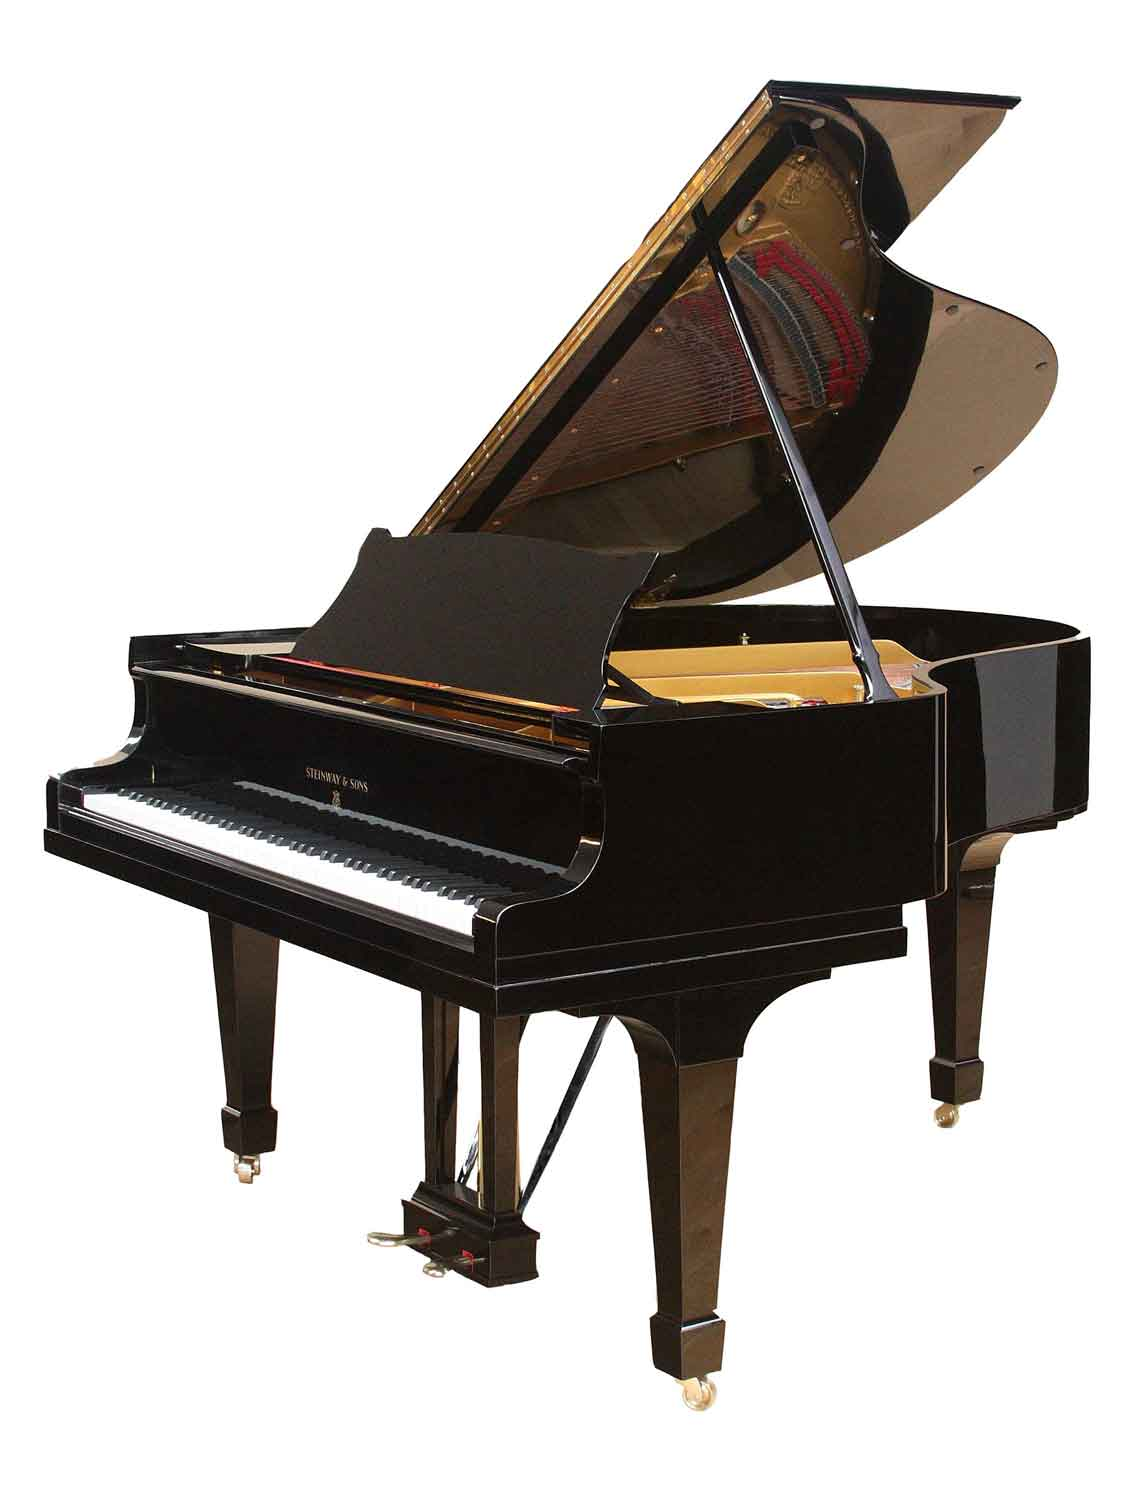 images/produkter/steinway-sons/Steinway_M/Steinway-M-Ny-renoveret.jpg